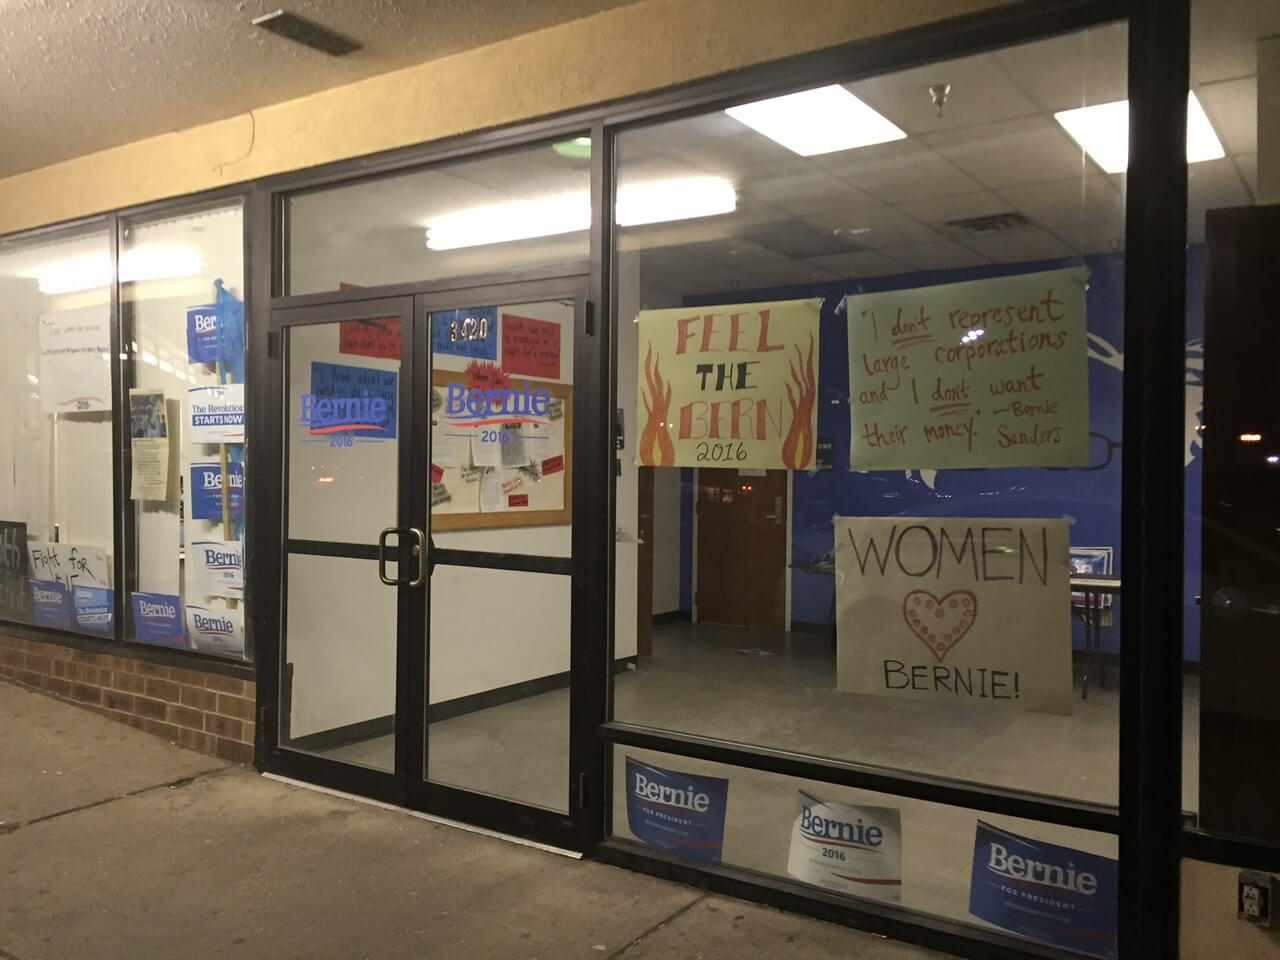 The Sanders office located on MLK and Euclid